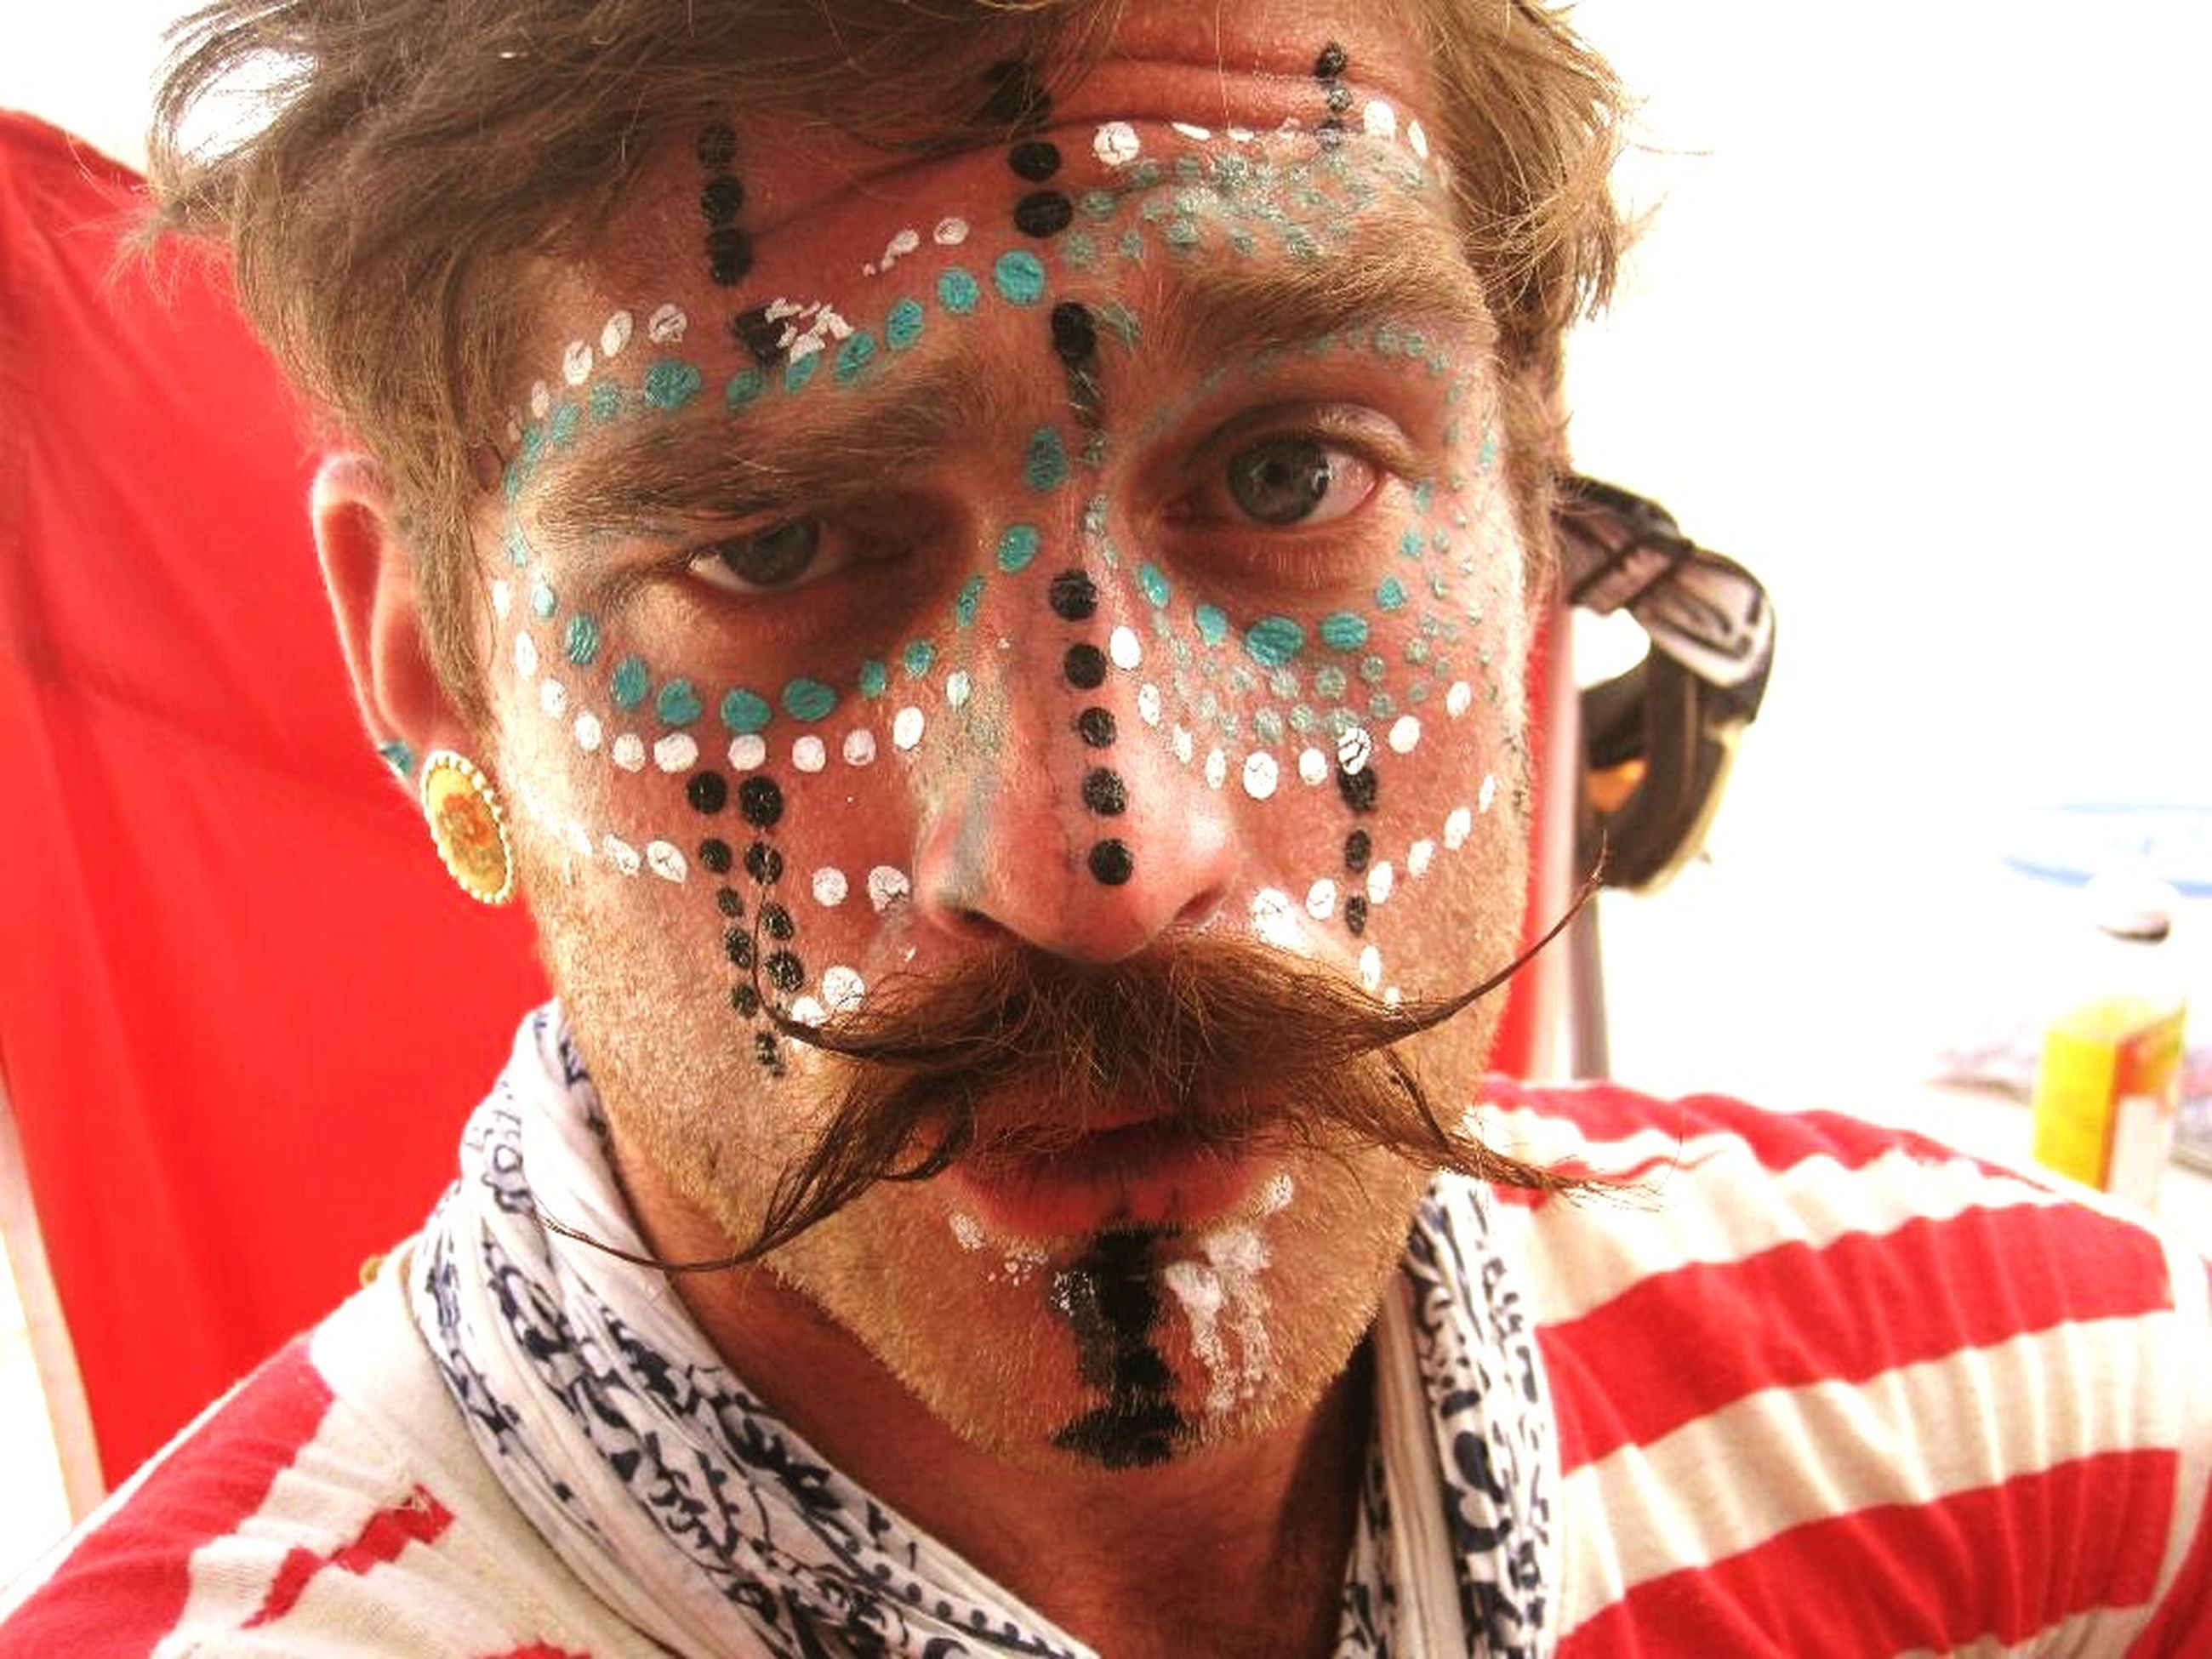 portrait, looking at camera, close-up, creativity, art, art and craft, front view, tradition, red, animal representation, human representation, cultures, headshot, focus on foreground, celebration, one person, mask - disguise, humor, sculpture, costume